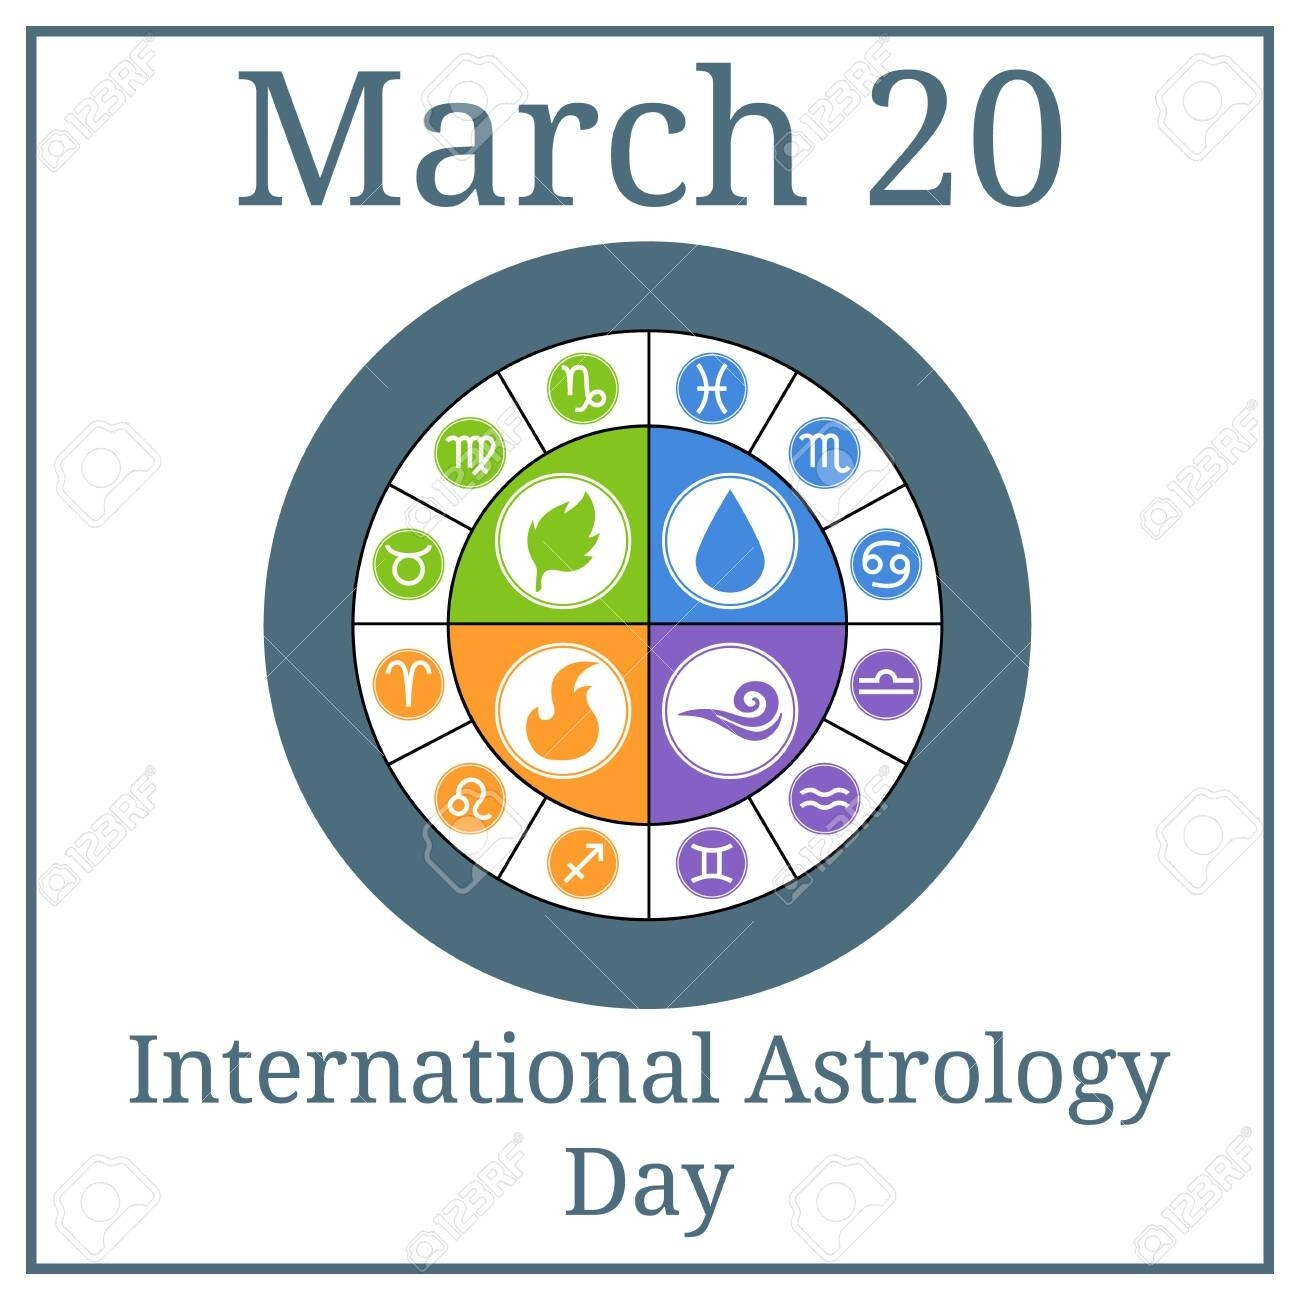 International Astrology Day. March 20. March Holiday Calendar